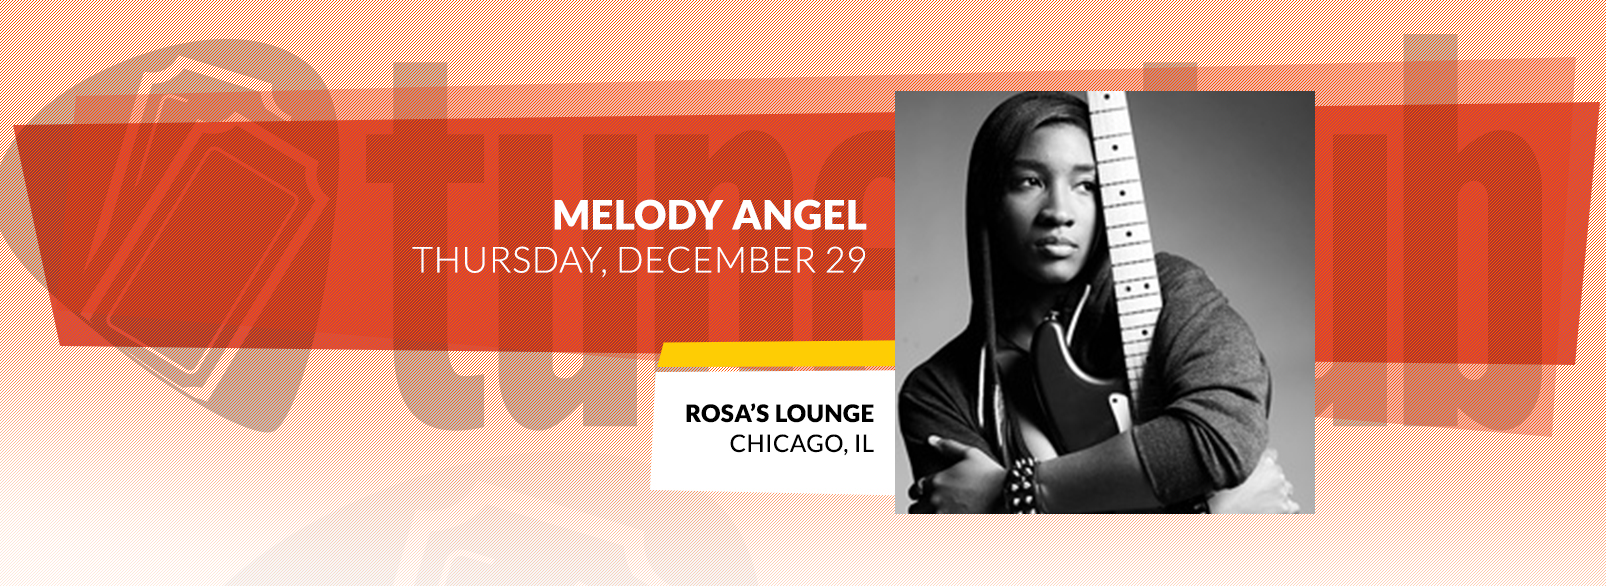 Melody Angel @ Rosa's Lounge